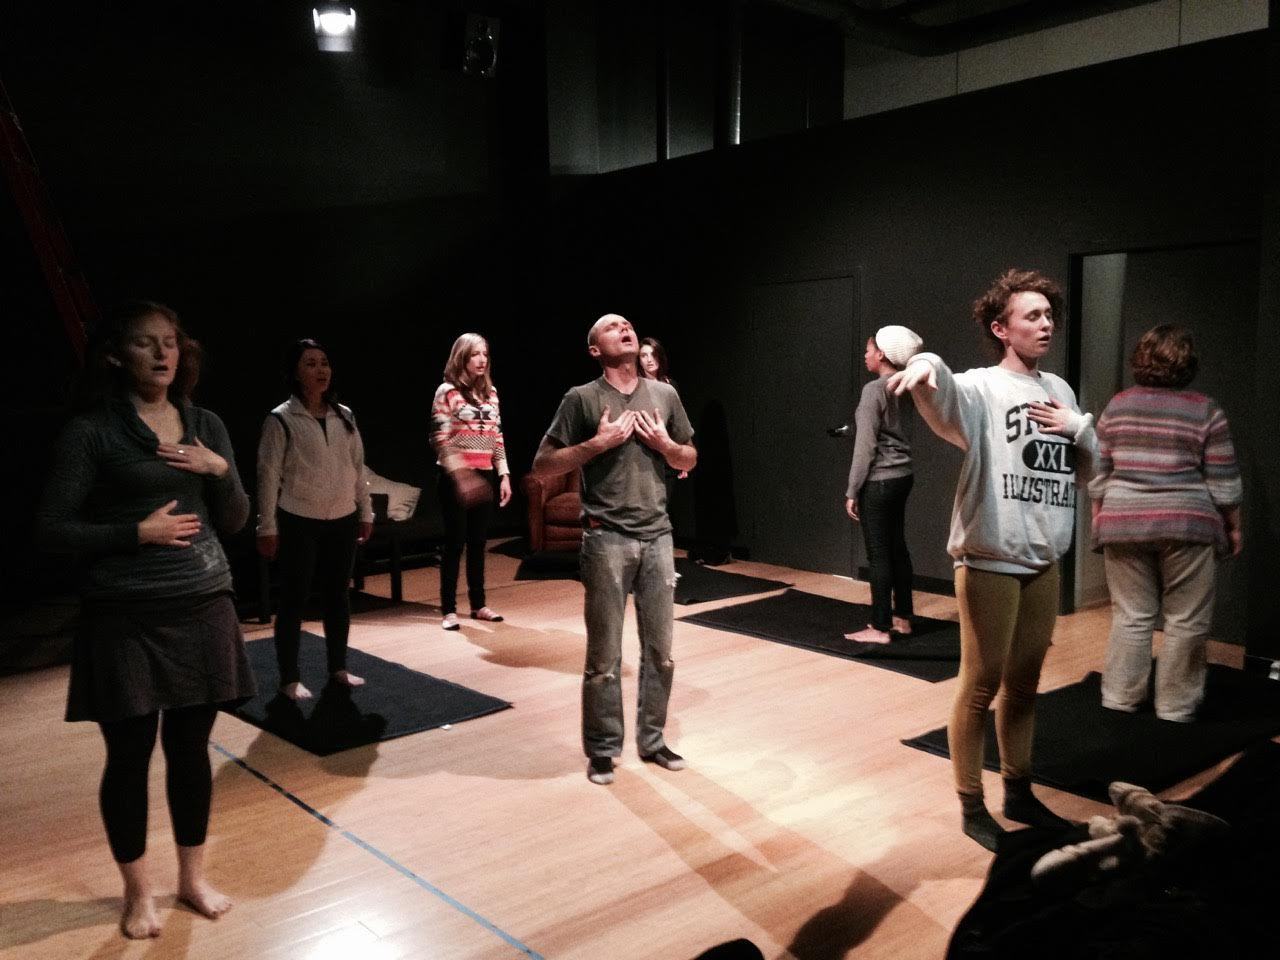 Training students with established techniques and tools, I work closely with each individual to develop a foundation, fluency and specificity in the craft of acting.